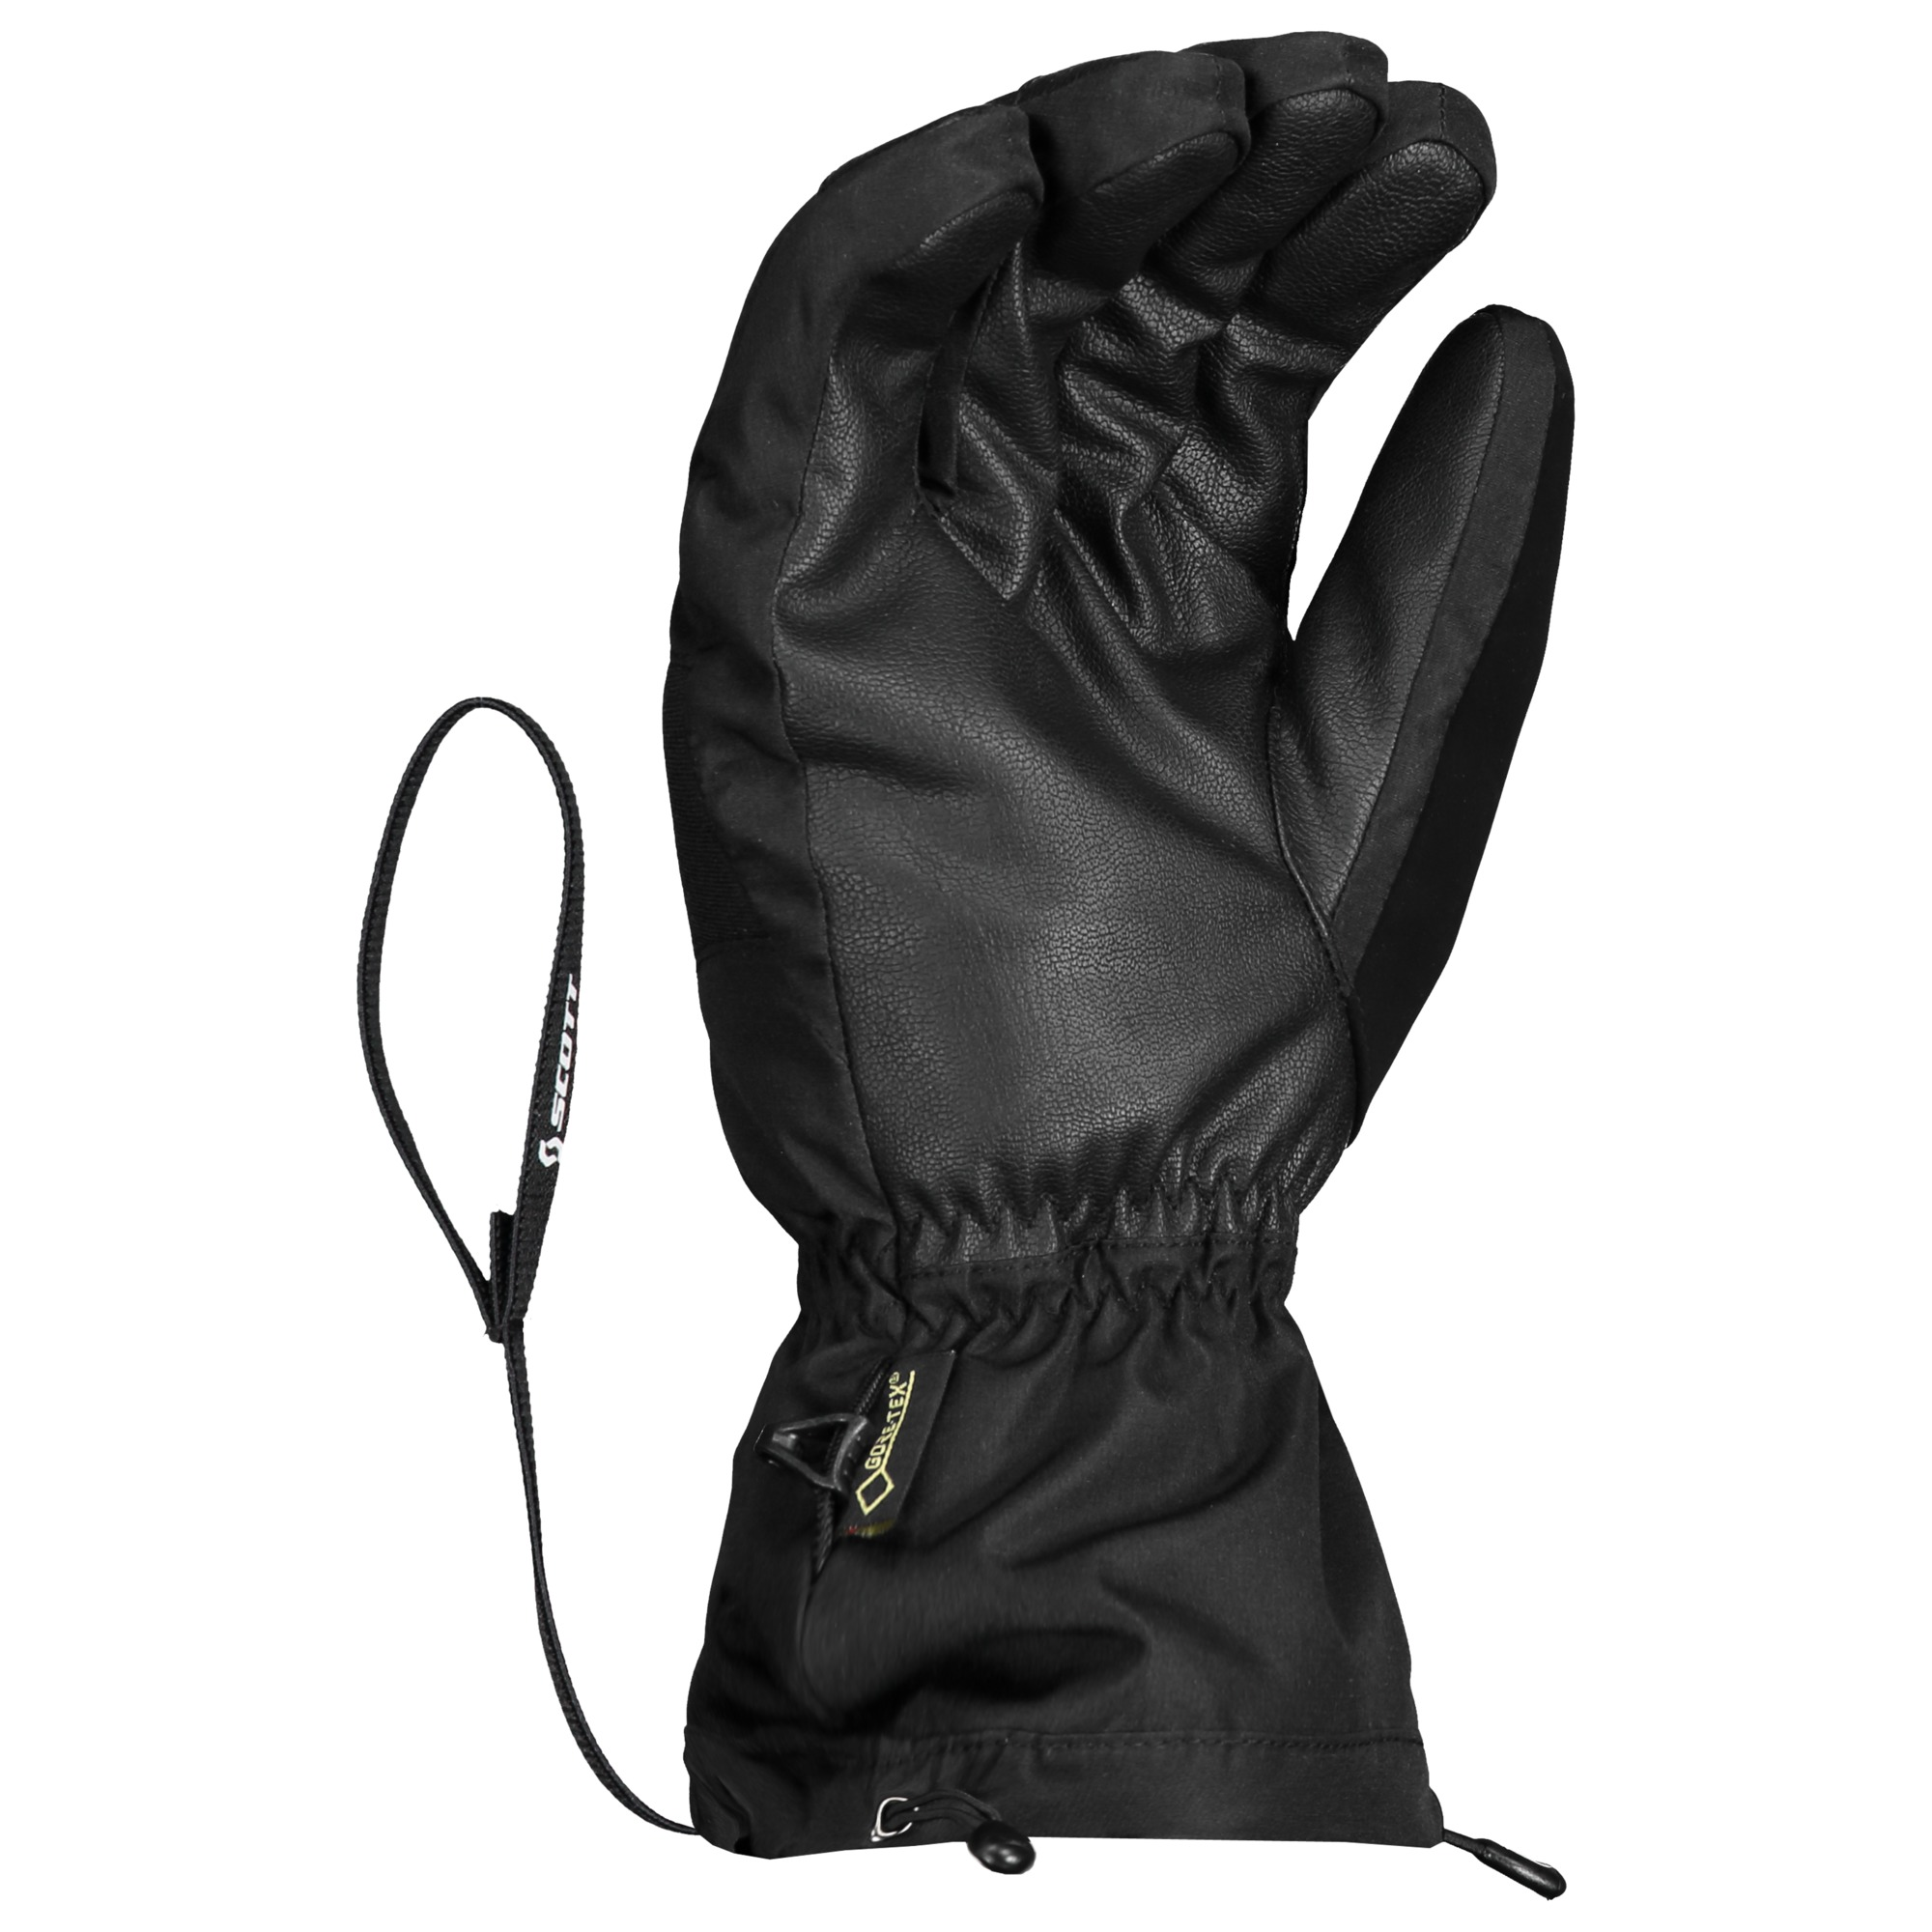 SCOTT Ultimate GTX Glove